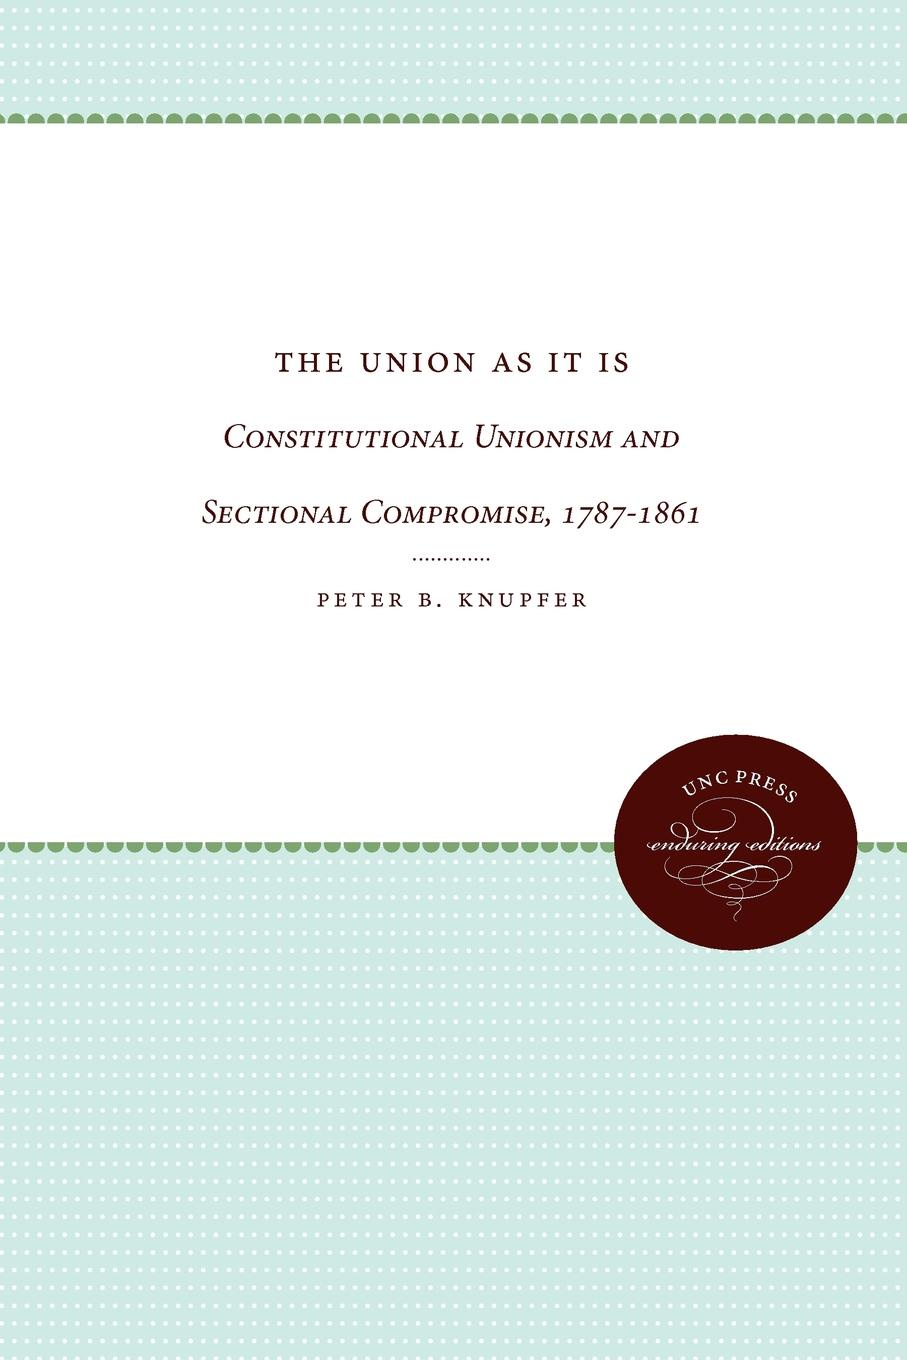 цены на Peter B. Knupfer The Union as It Is. Constitutional Unionism and Sectional Compromise, 1787-1861  в интернет-магазинах